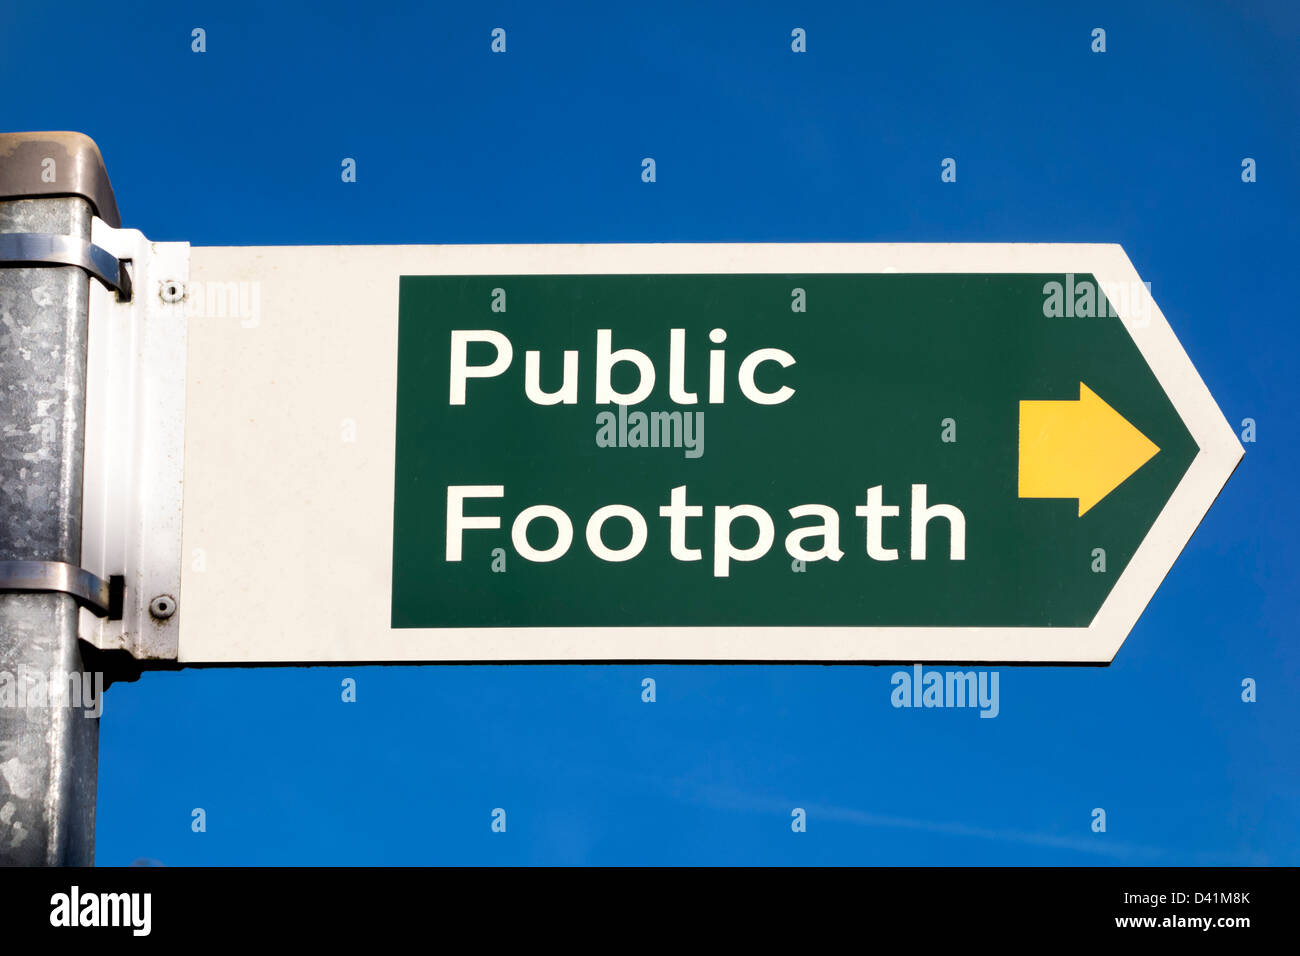 Public Footpath sign, UK - Stock Image